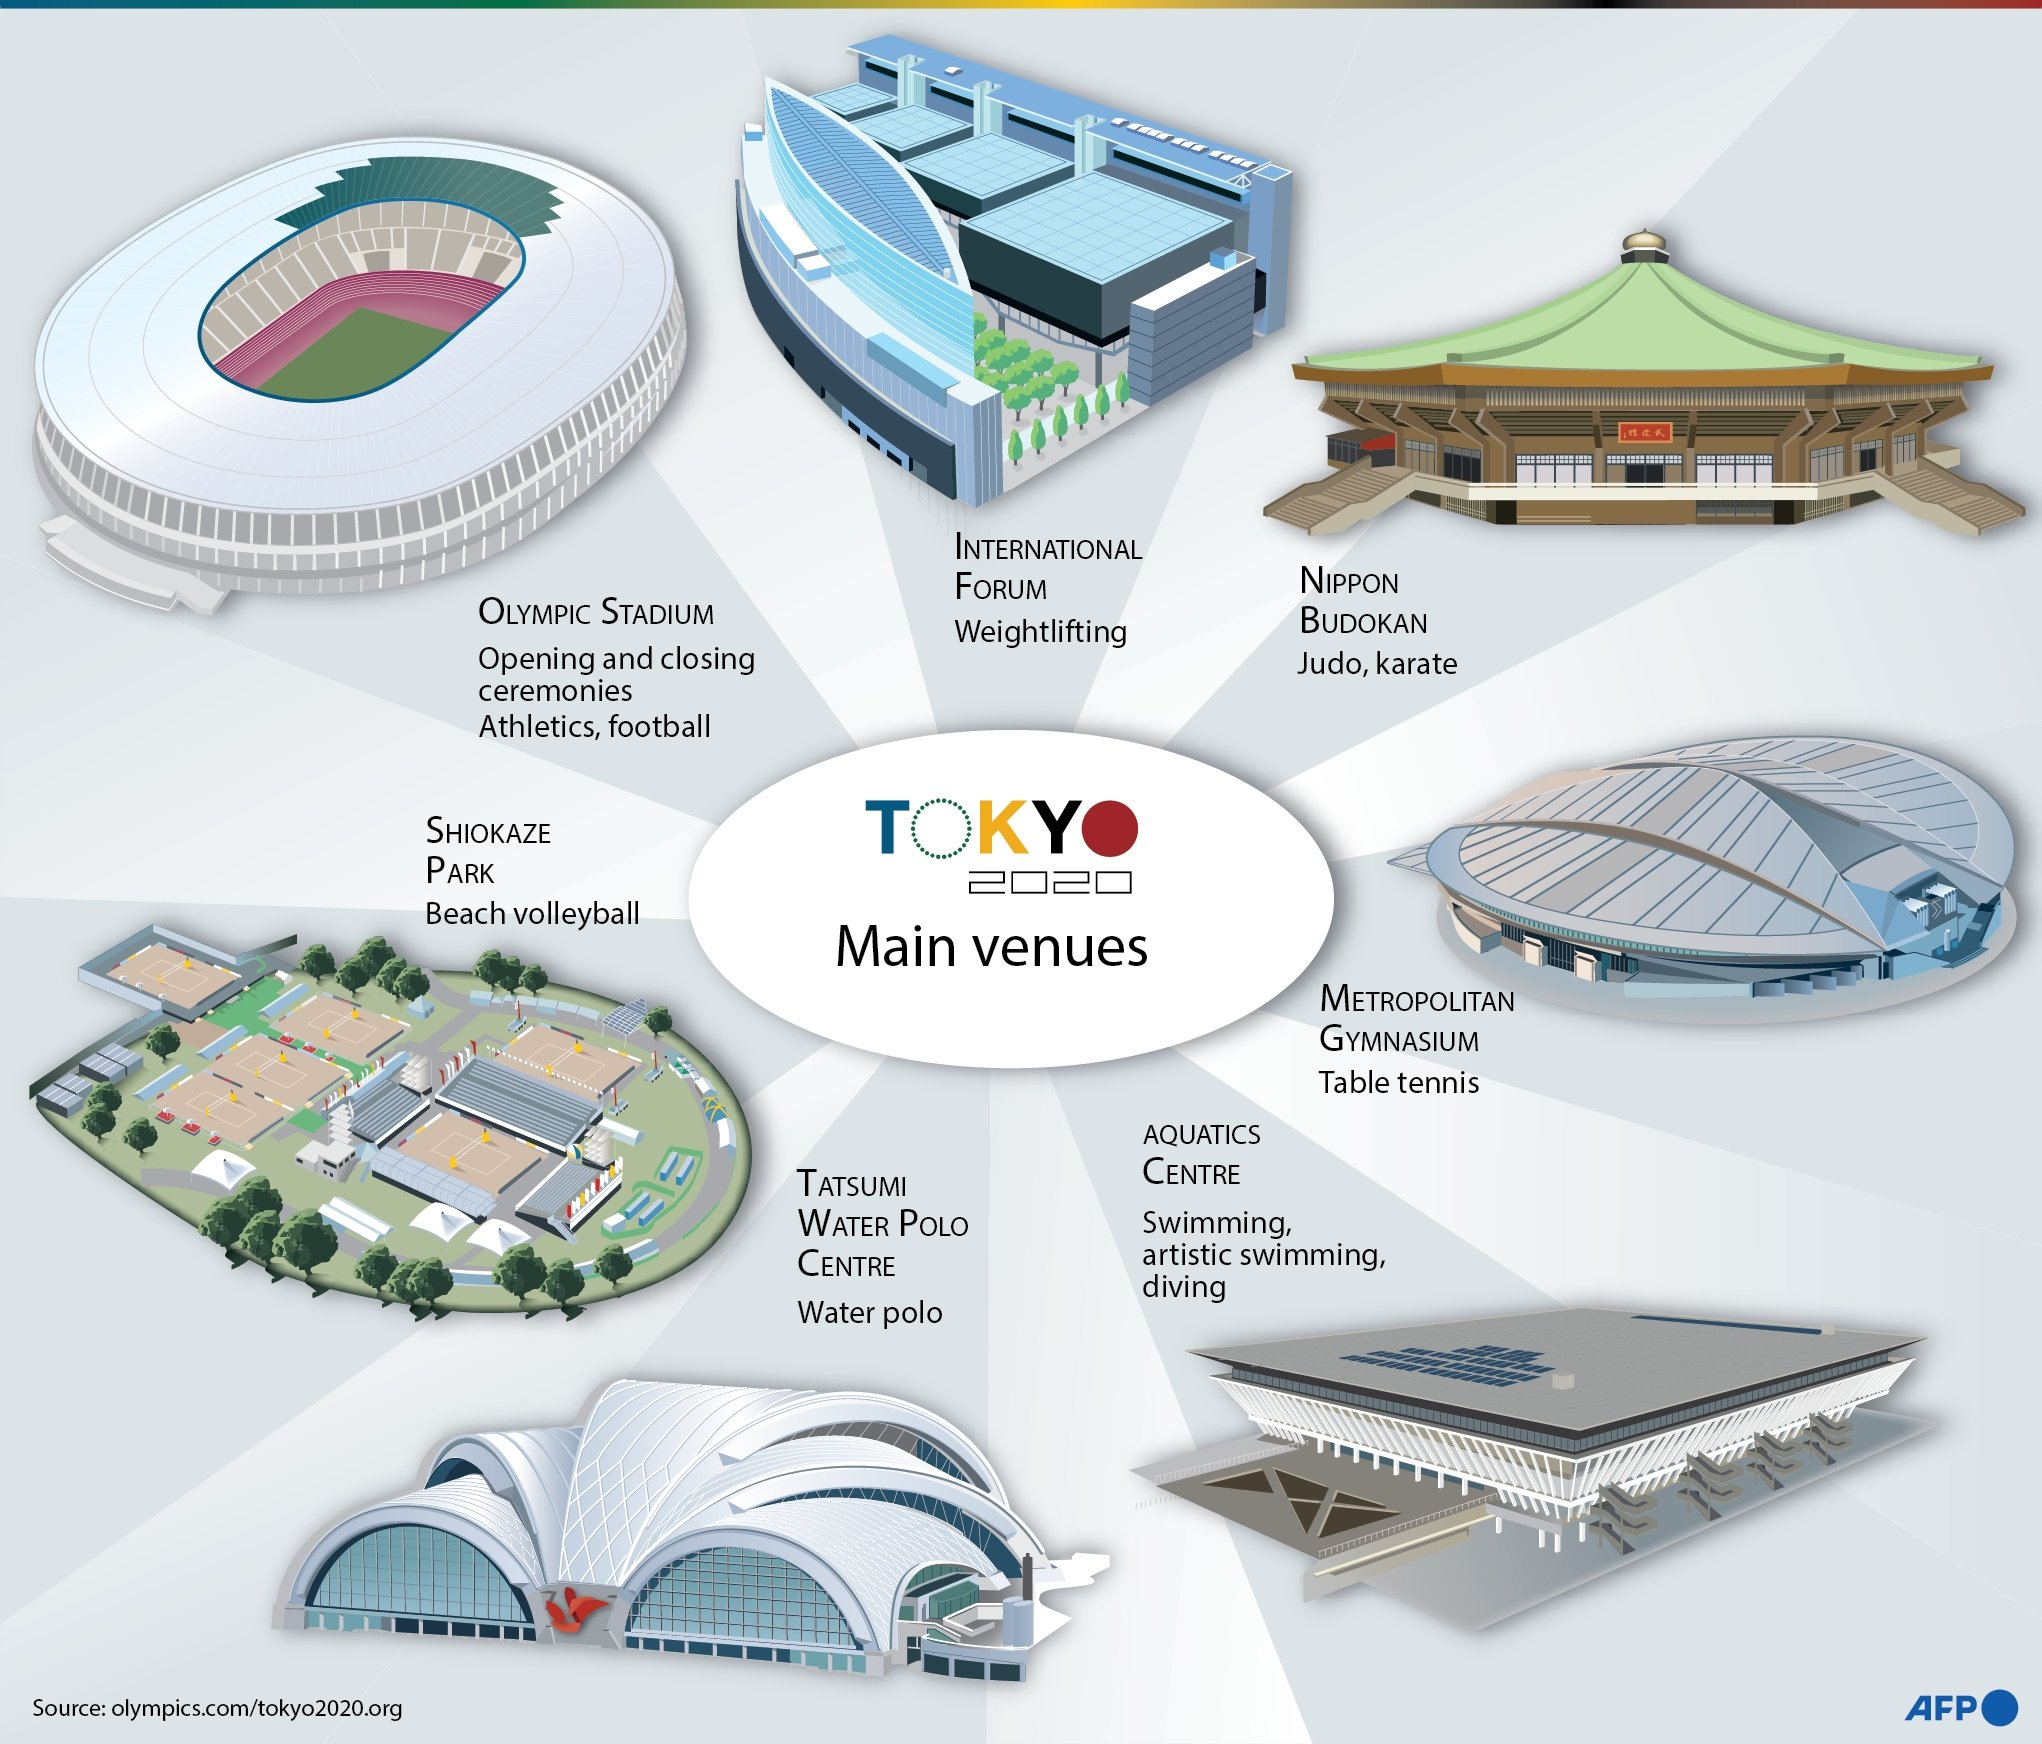 The main venues that will host the Olympic events during the Tokyo 2020. (Infographic by AFP)